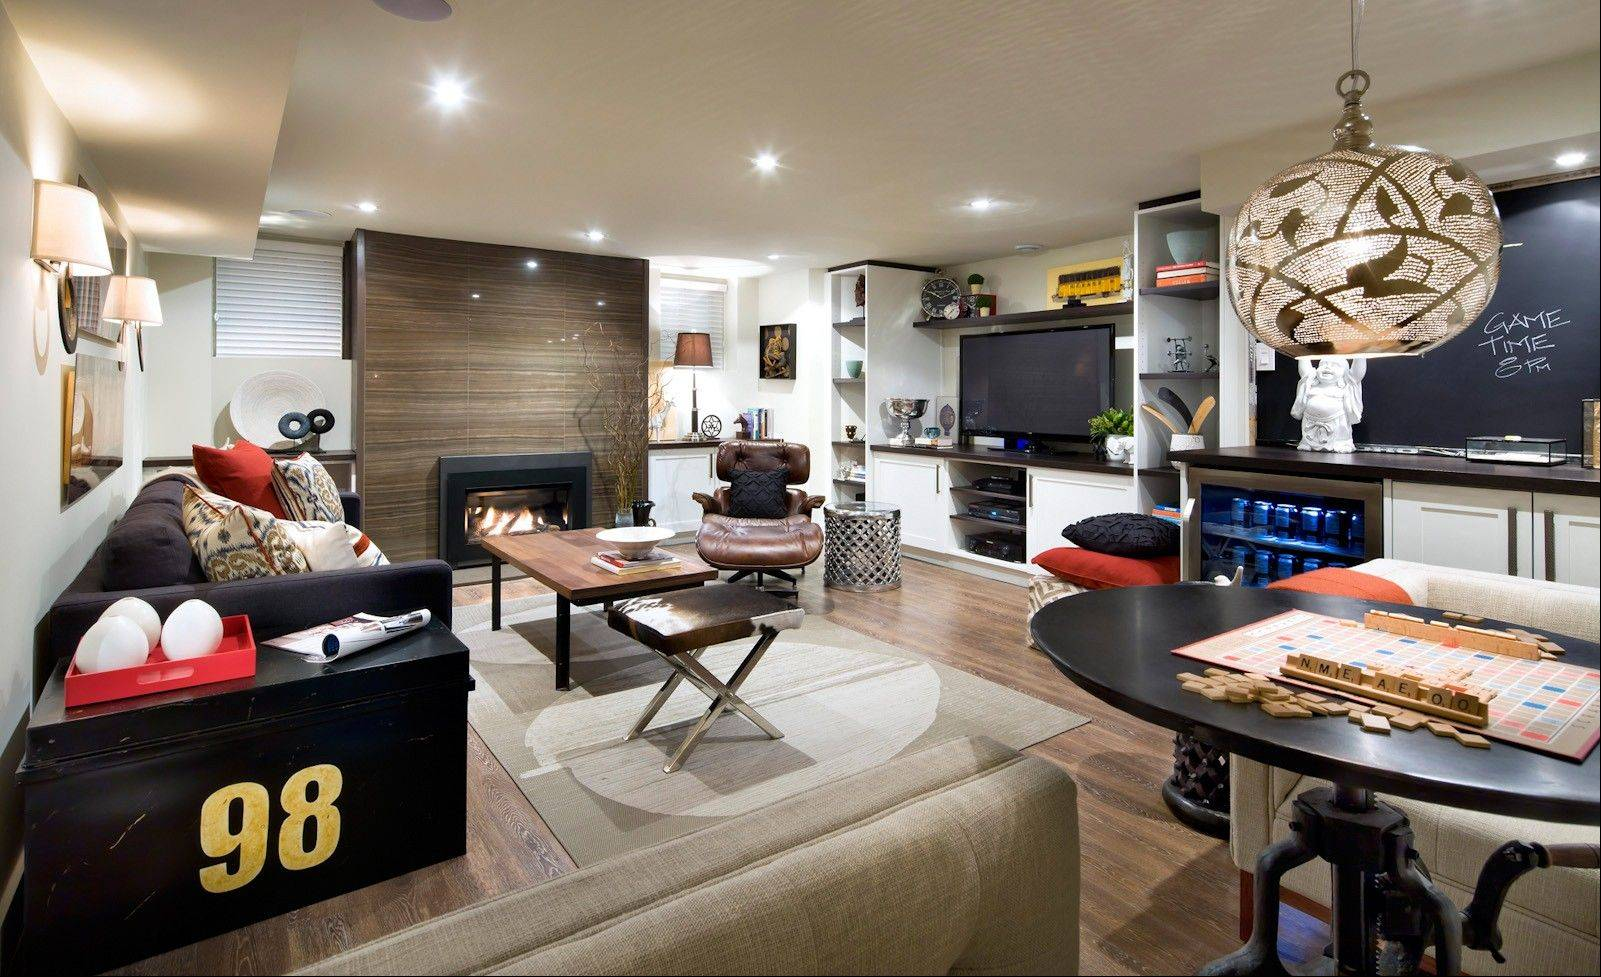 Warm colors, durable materials and accessories geared to this family�s love for games all contribute to the appeal of this space.